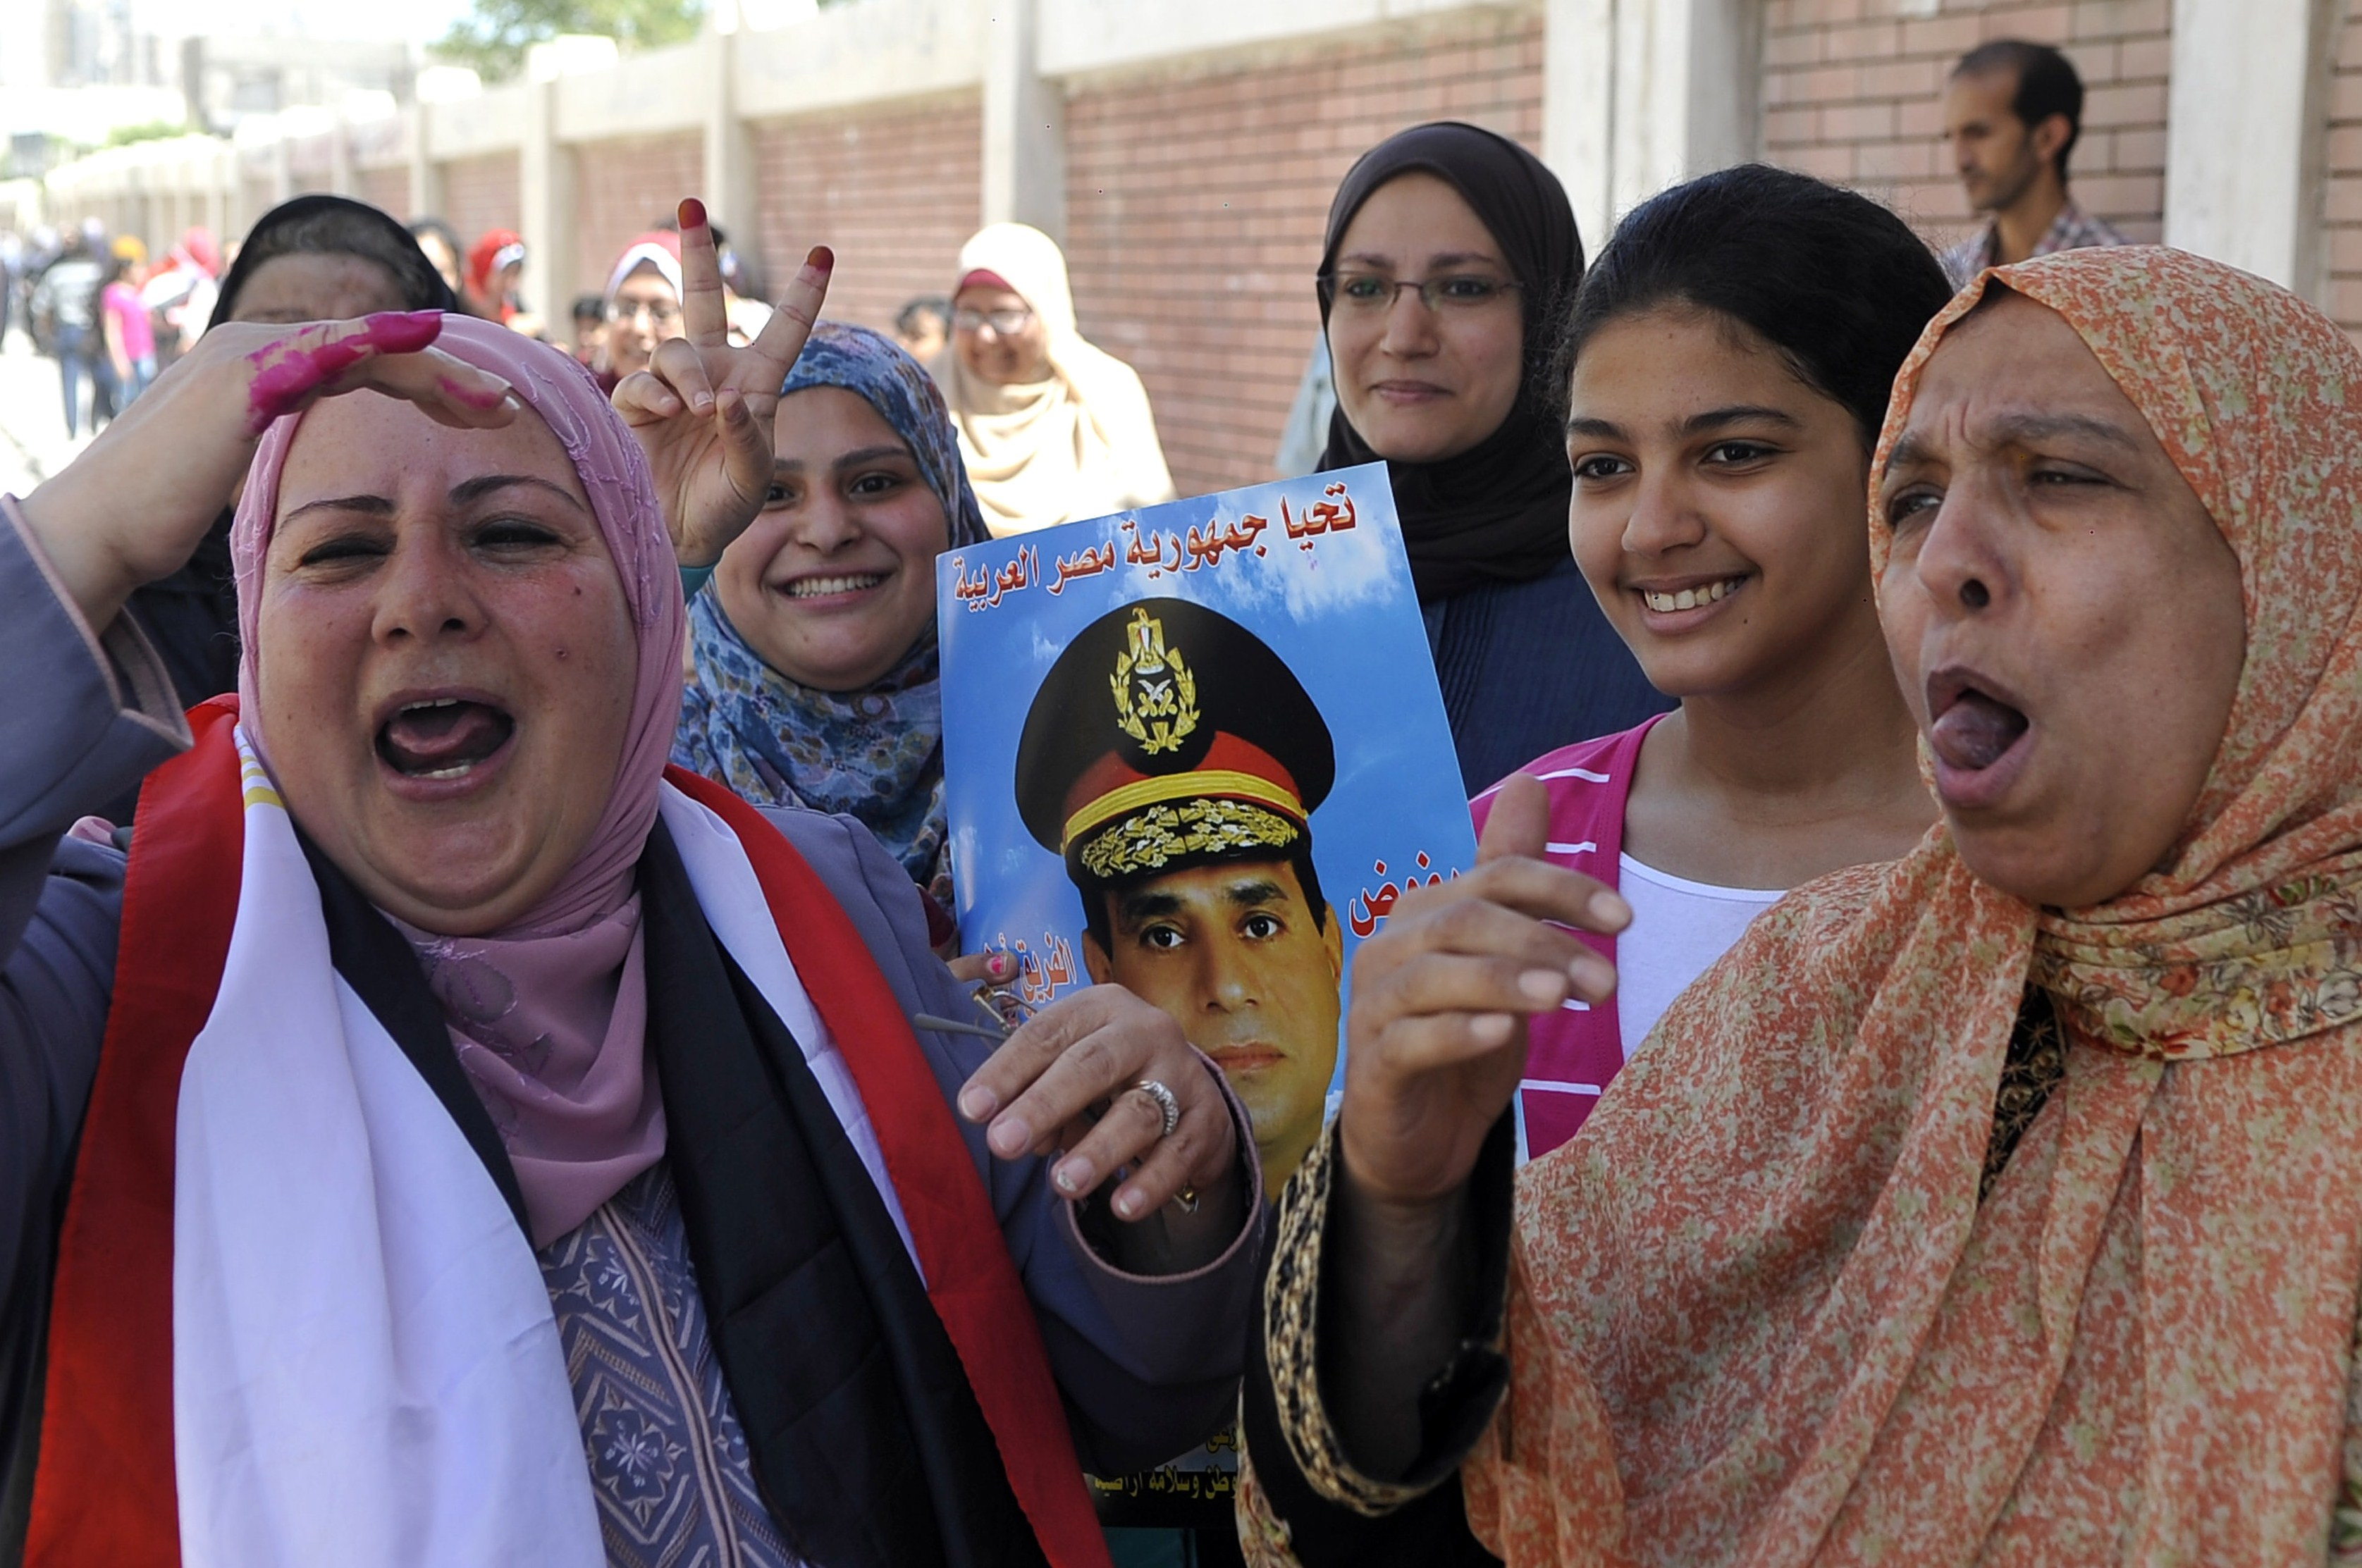 Supporters of ex-army chief Abdel Fattah al-Sisi celebrate after voting in front of a polling station in the Mediterranean porty city of Alexandria on Monday. (AFP PHOTO/STR)